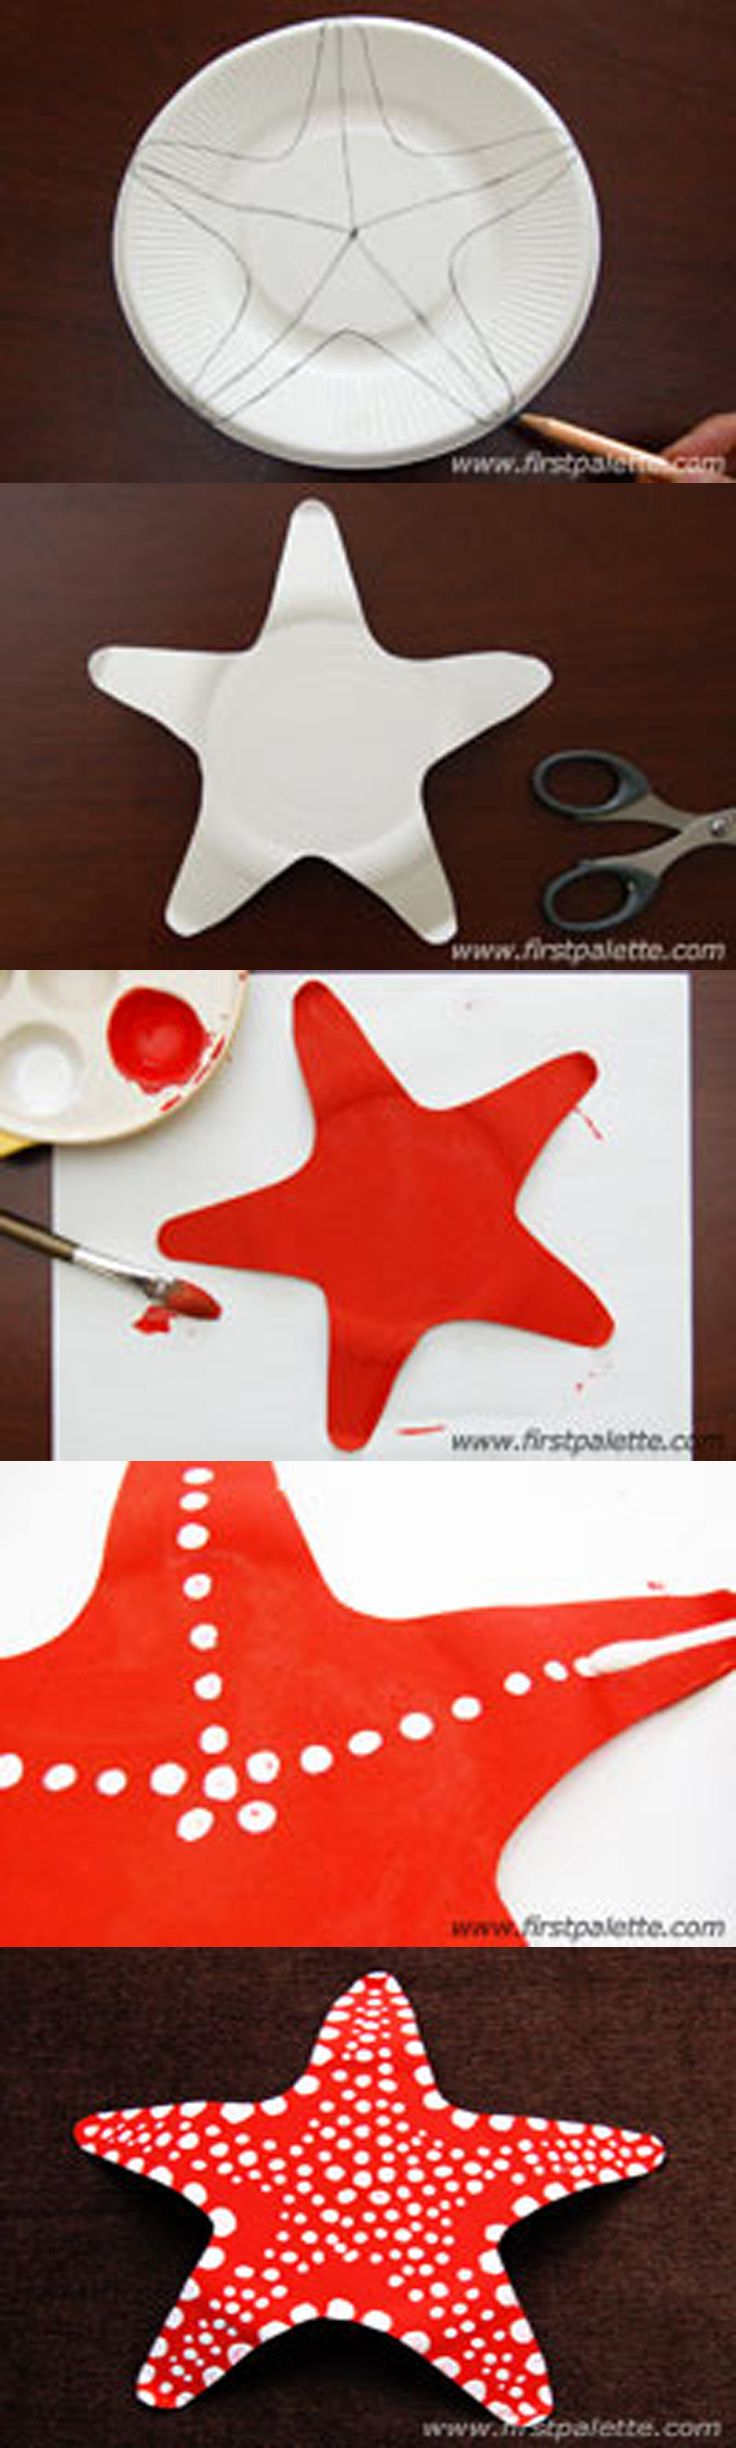 Nice and awesome starfish art for kids http://www.firstpalette.com/Craft_themes/Animals/paperplatestarfish/paperplatestarfish.html